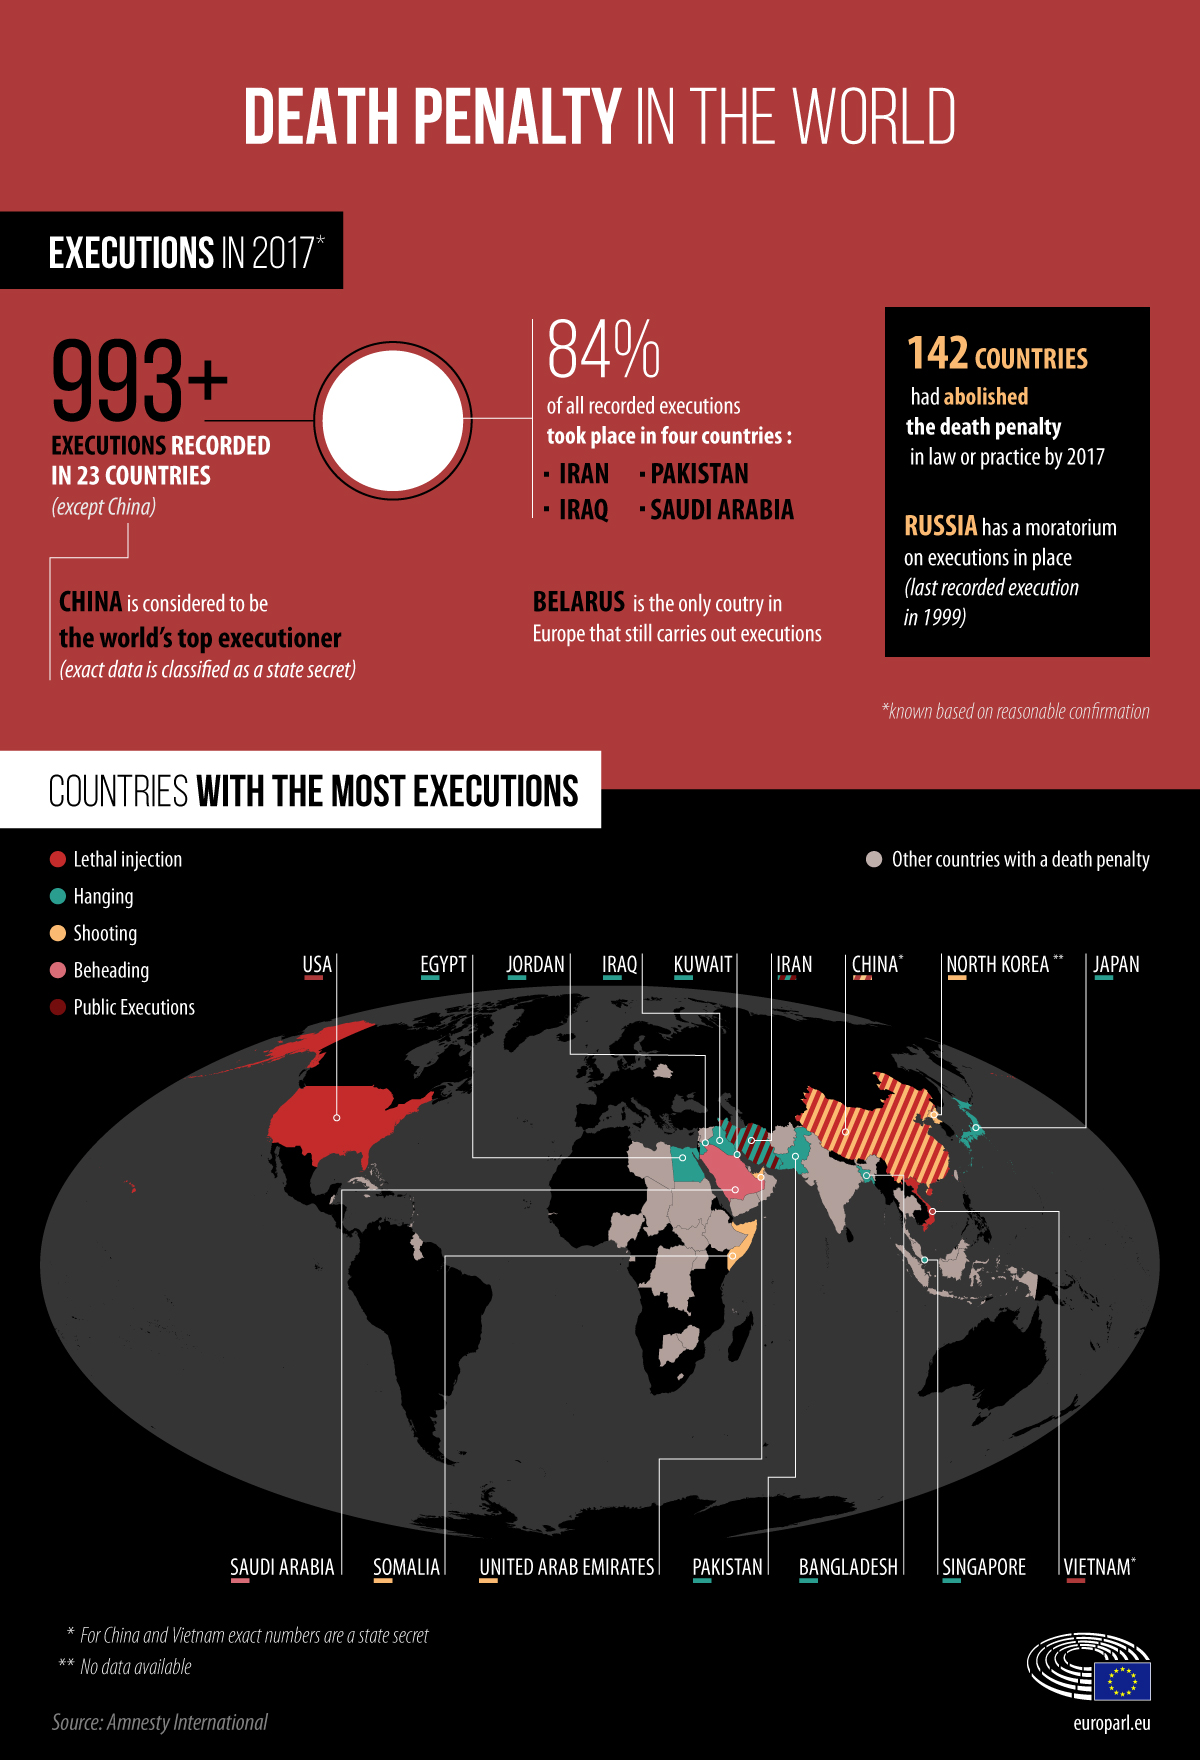 Death penalty in Europe and the rest of the world: key facts